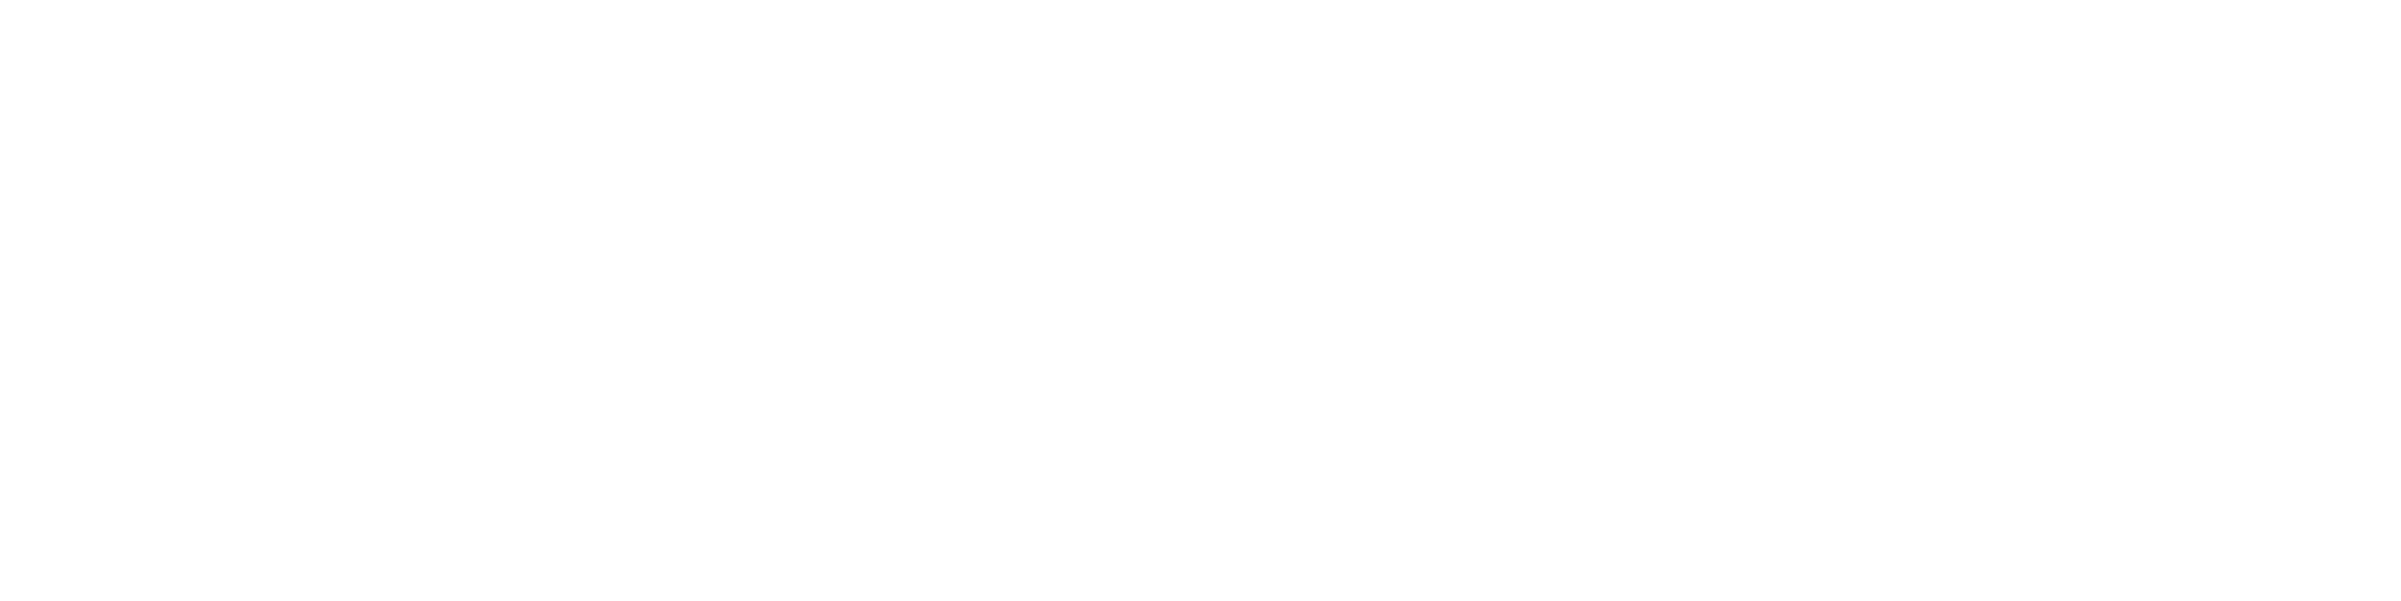 Thompson Counselling and Psychology